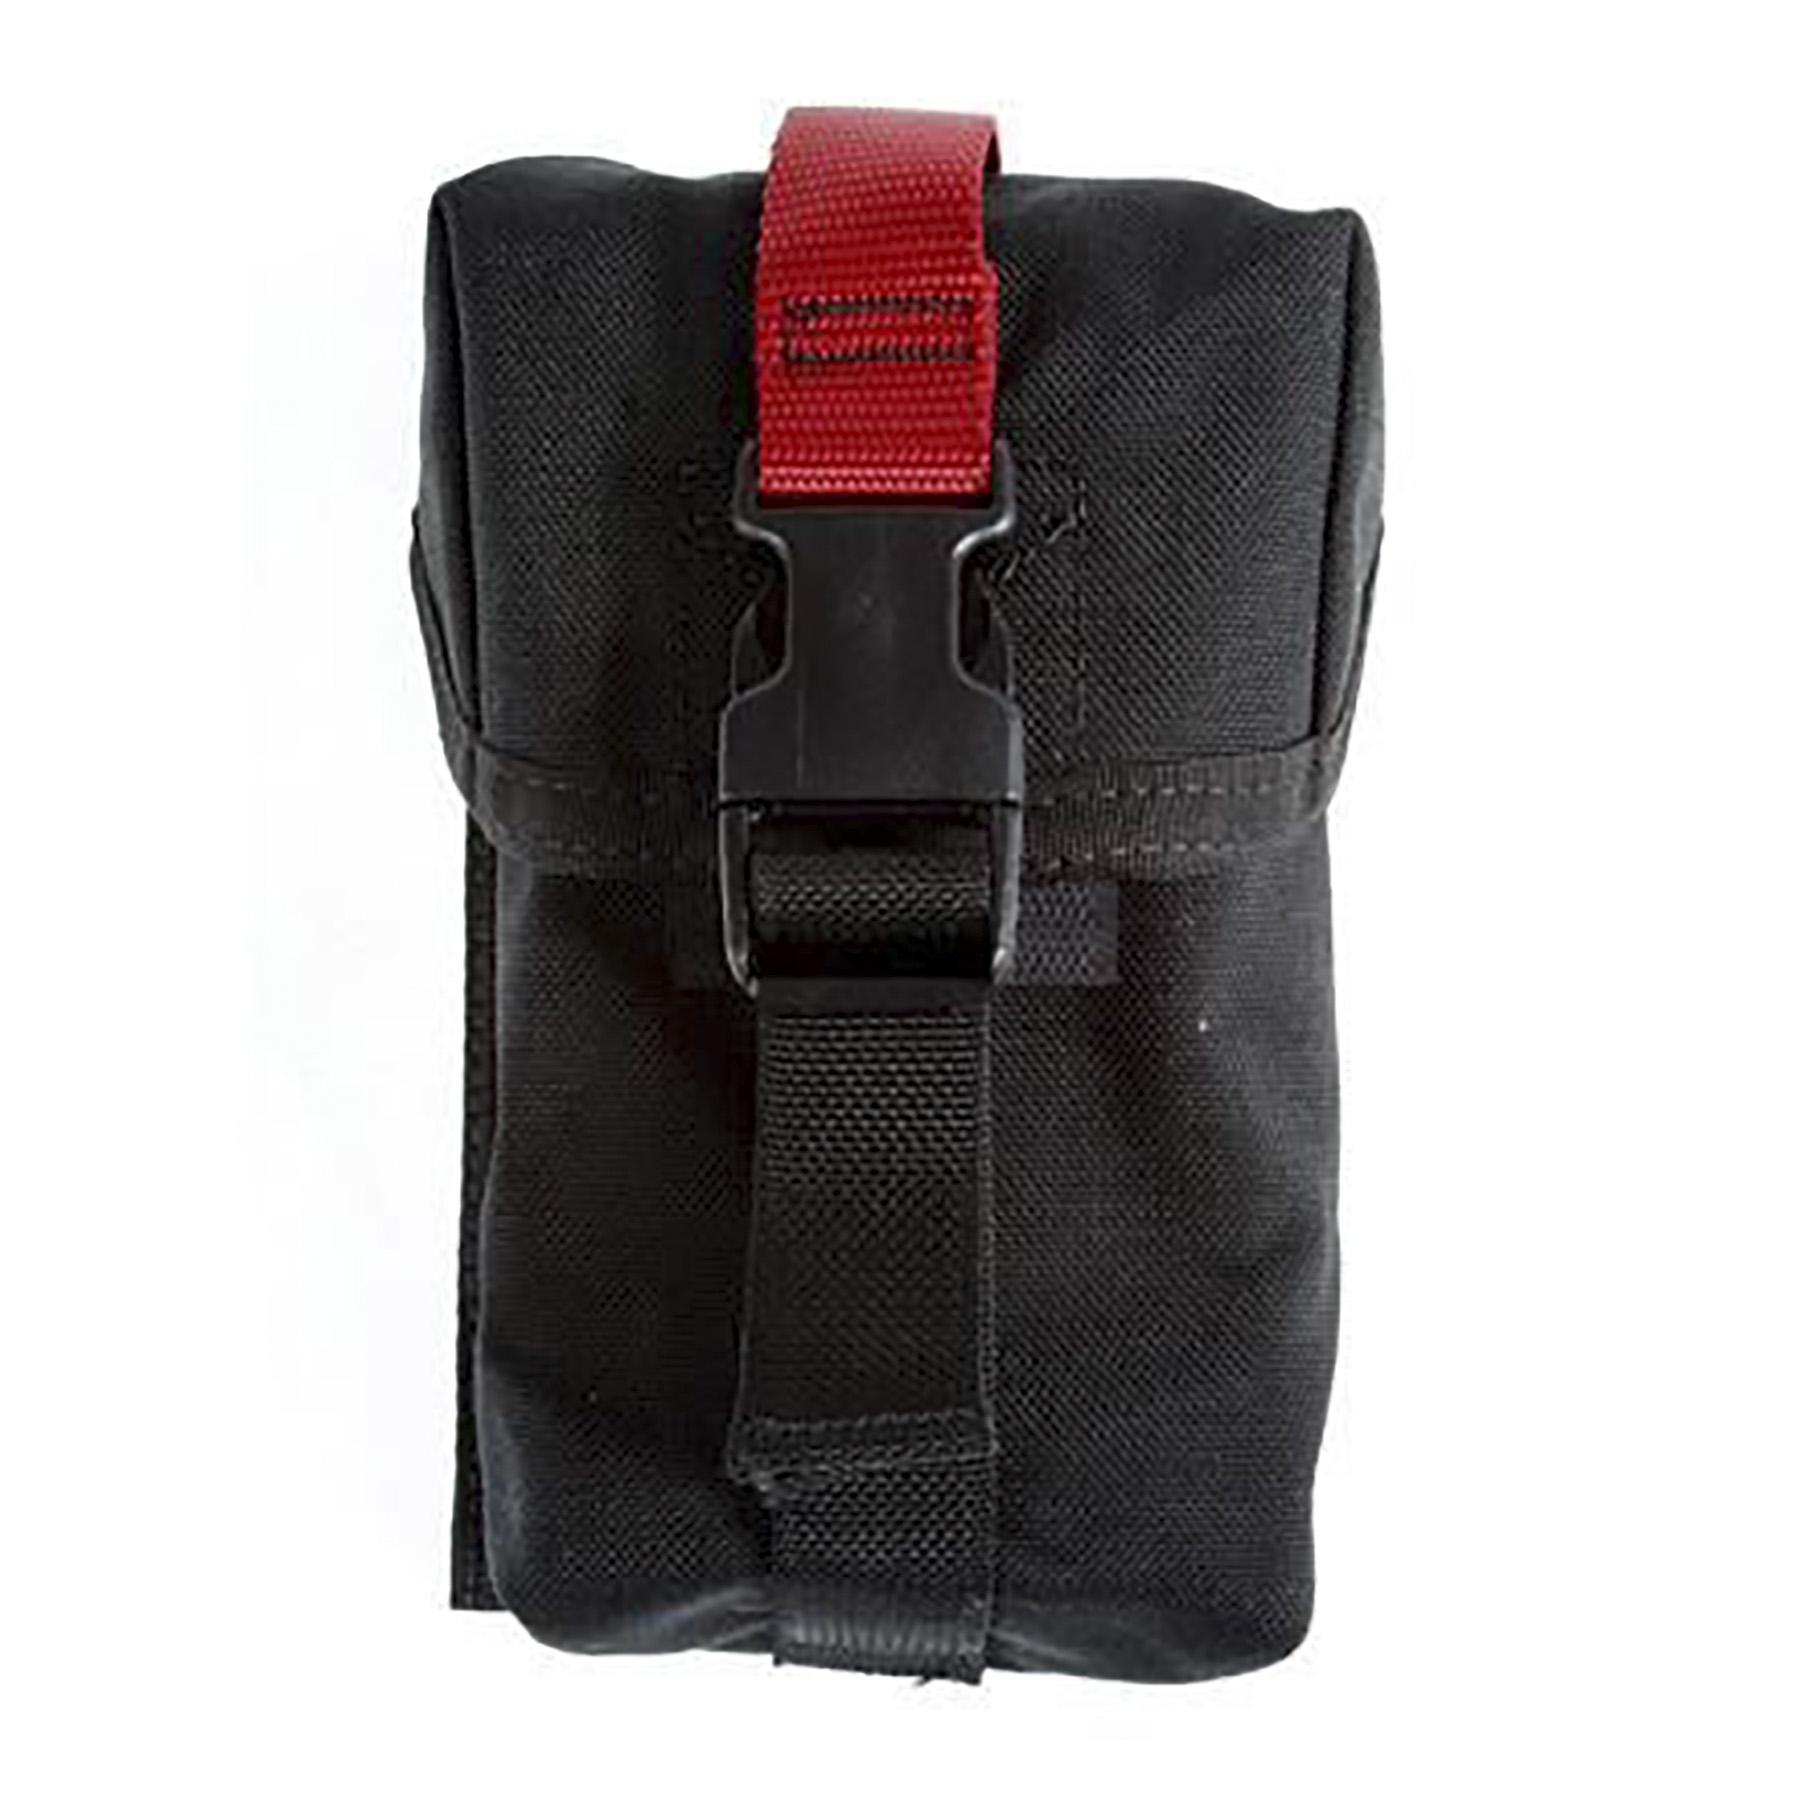 SPEC-OPS Medical Pouch - Medium